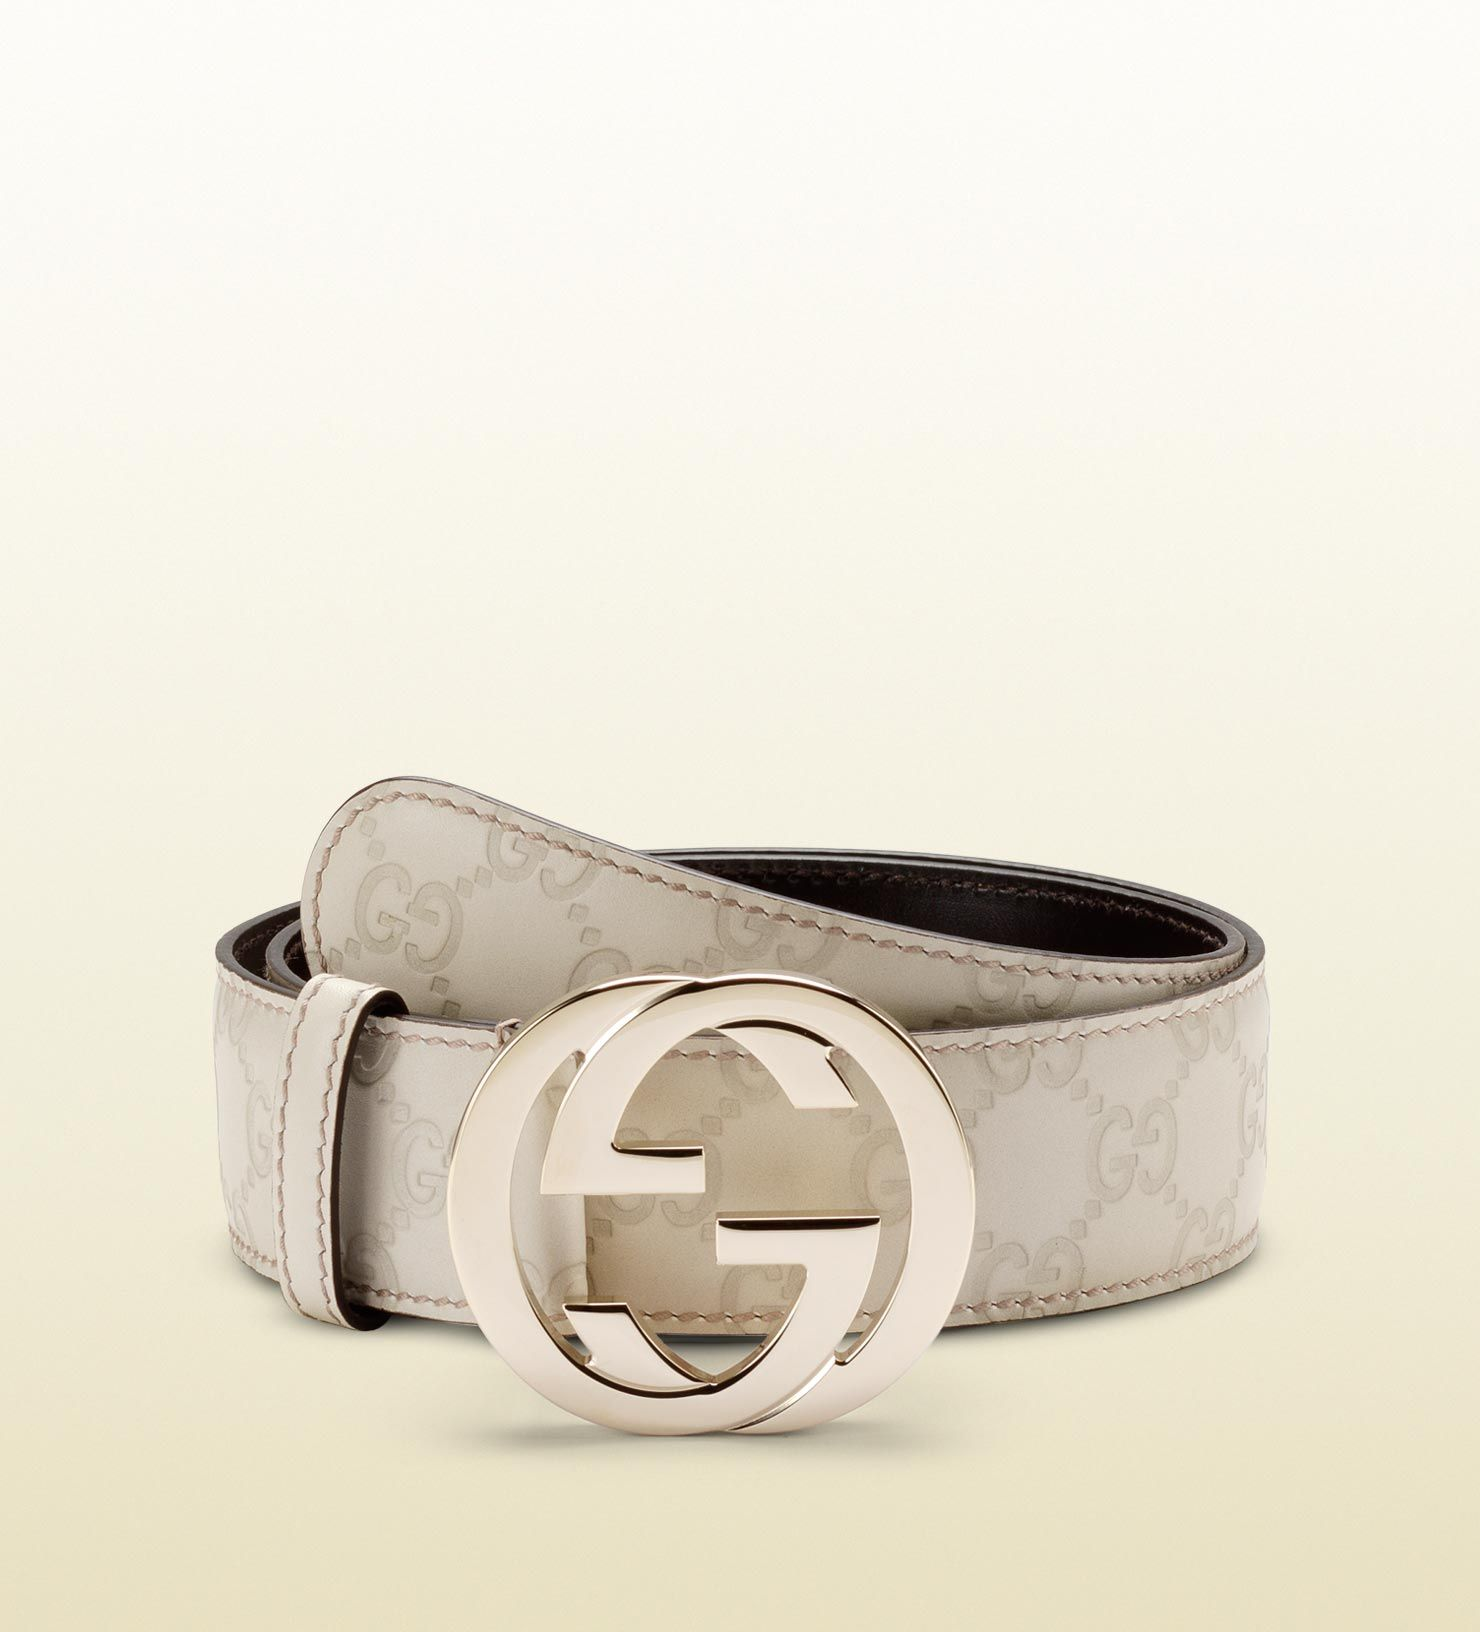 88db23bbf guccissima leather belt with interlocking G buckle | Men's Belts in ...